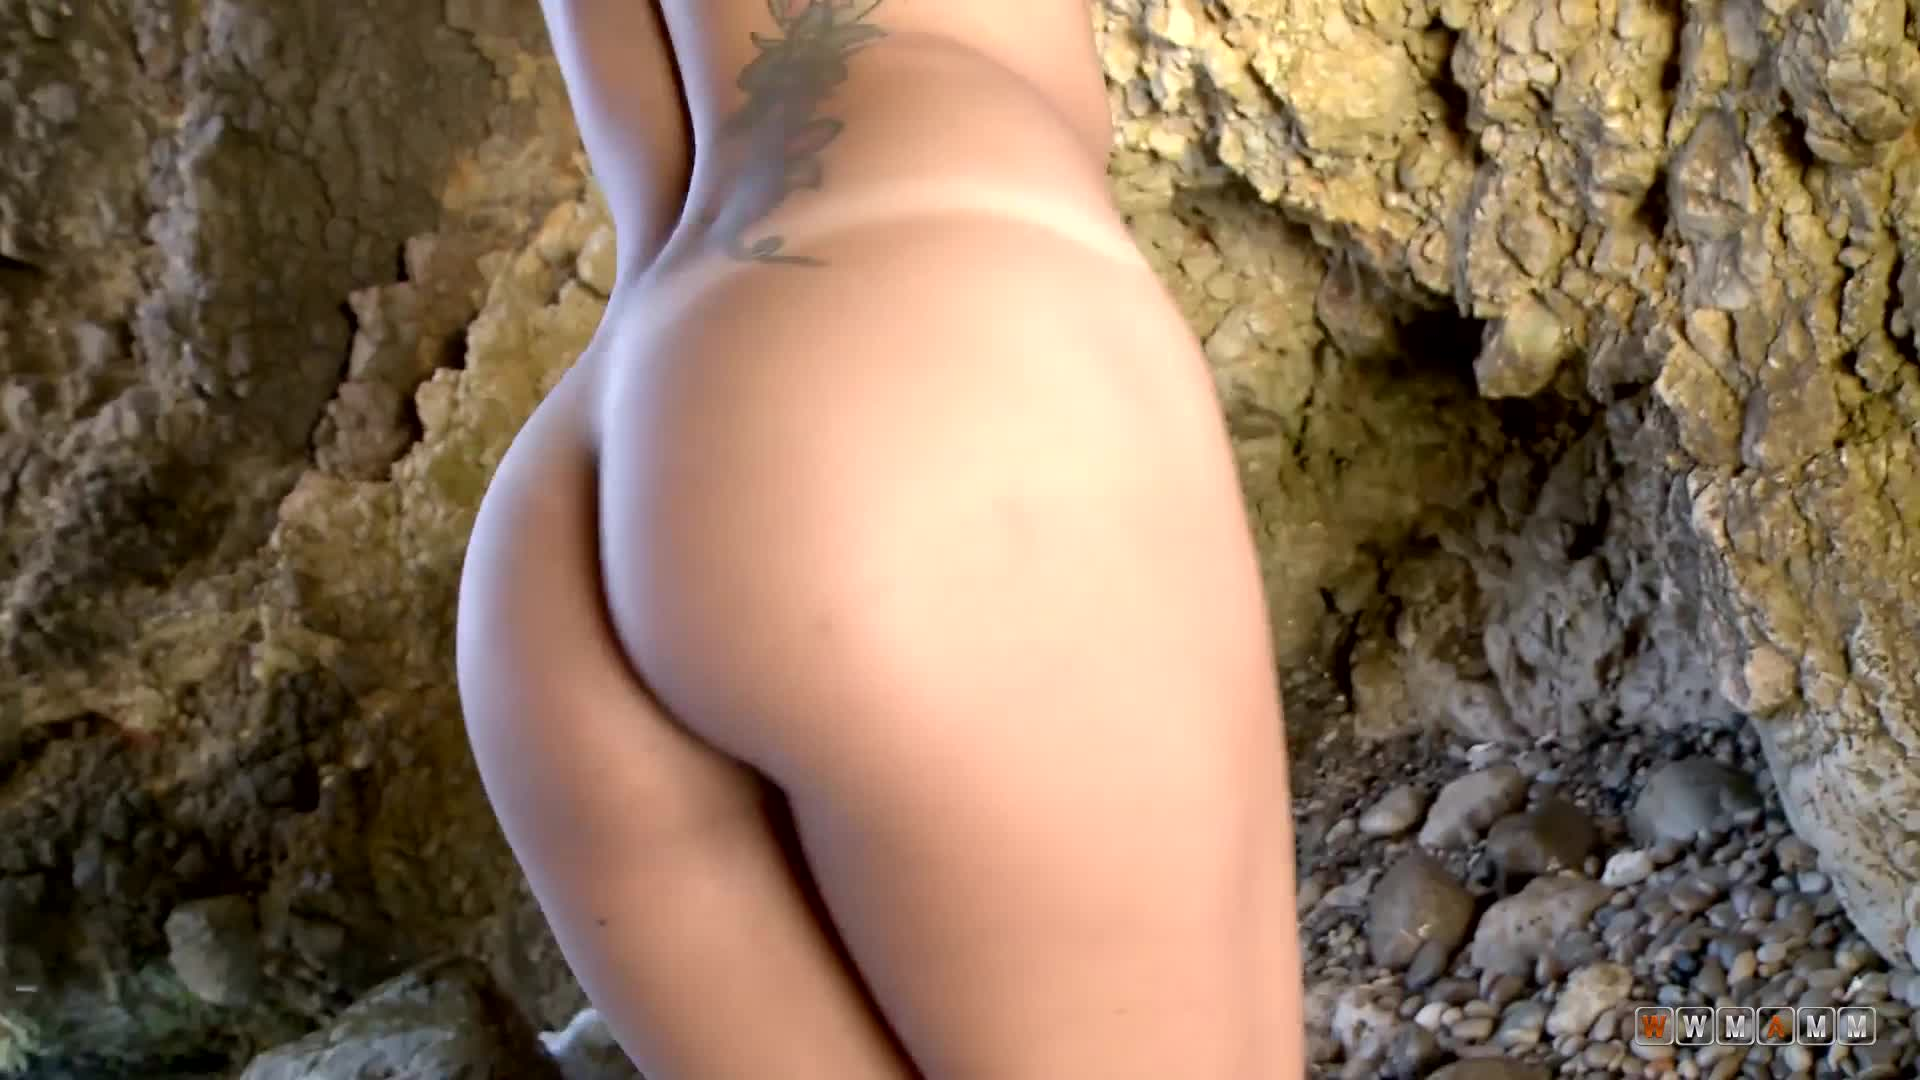 Fucking A Hot Sexy Blonde Girl On The Beach Is The Best Thing